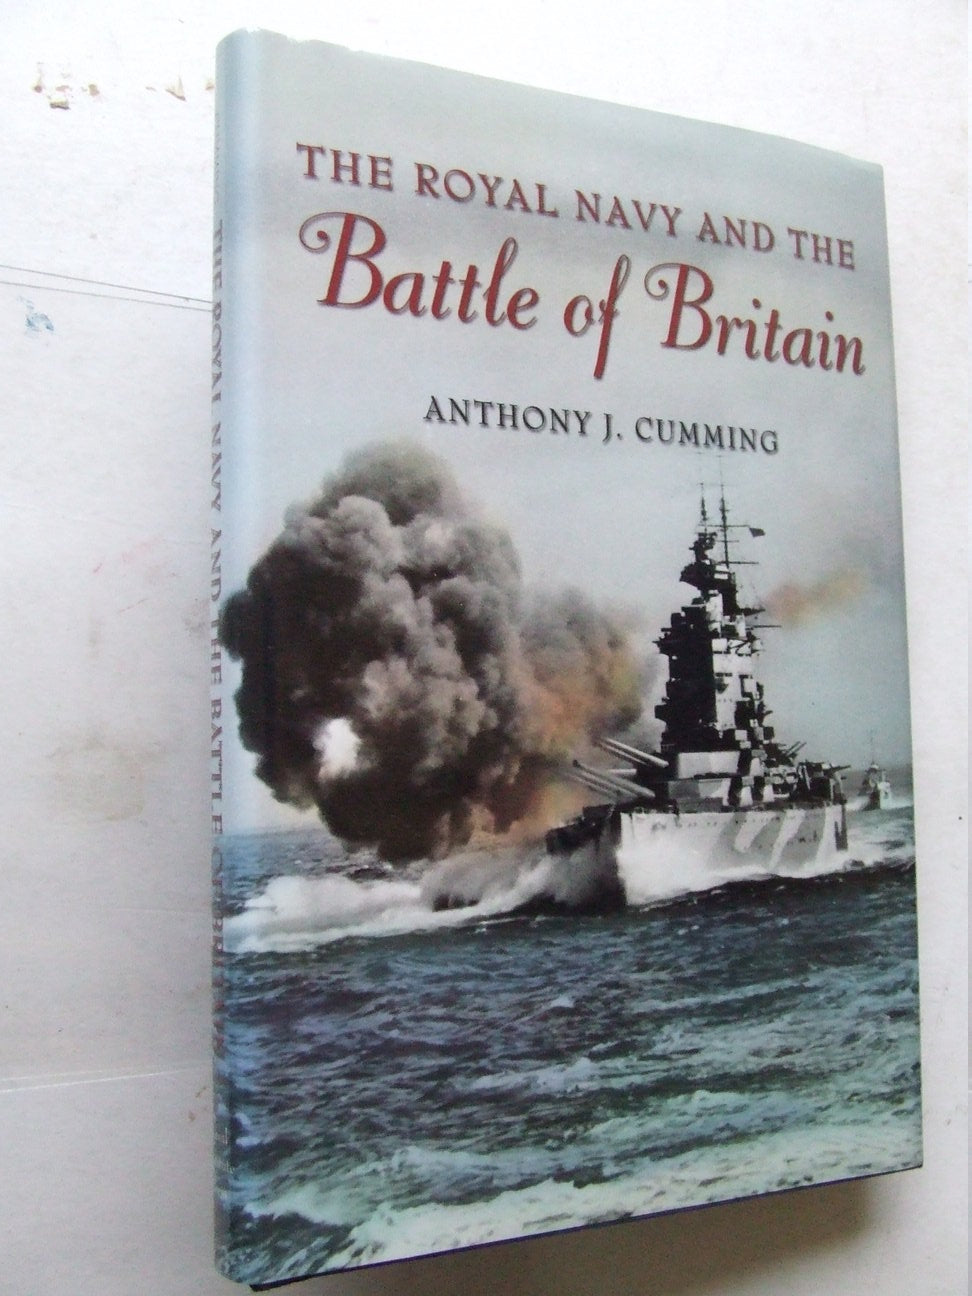 The Royal Navy and the Battle of Britain